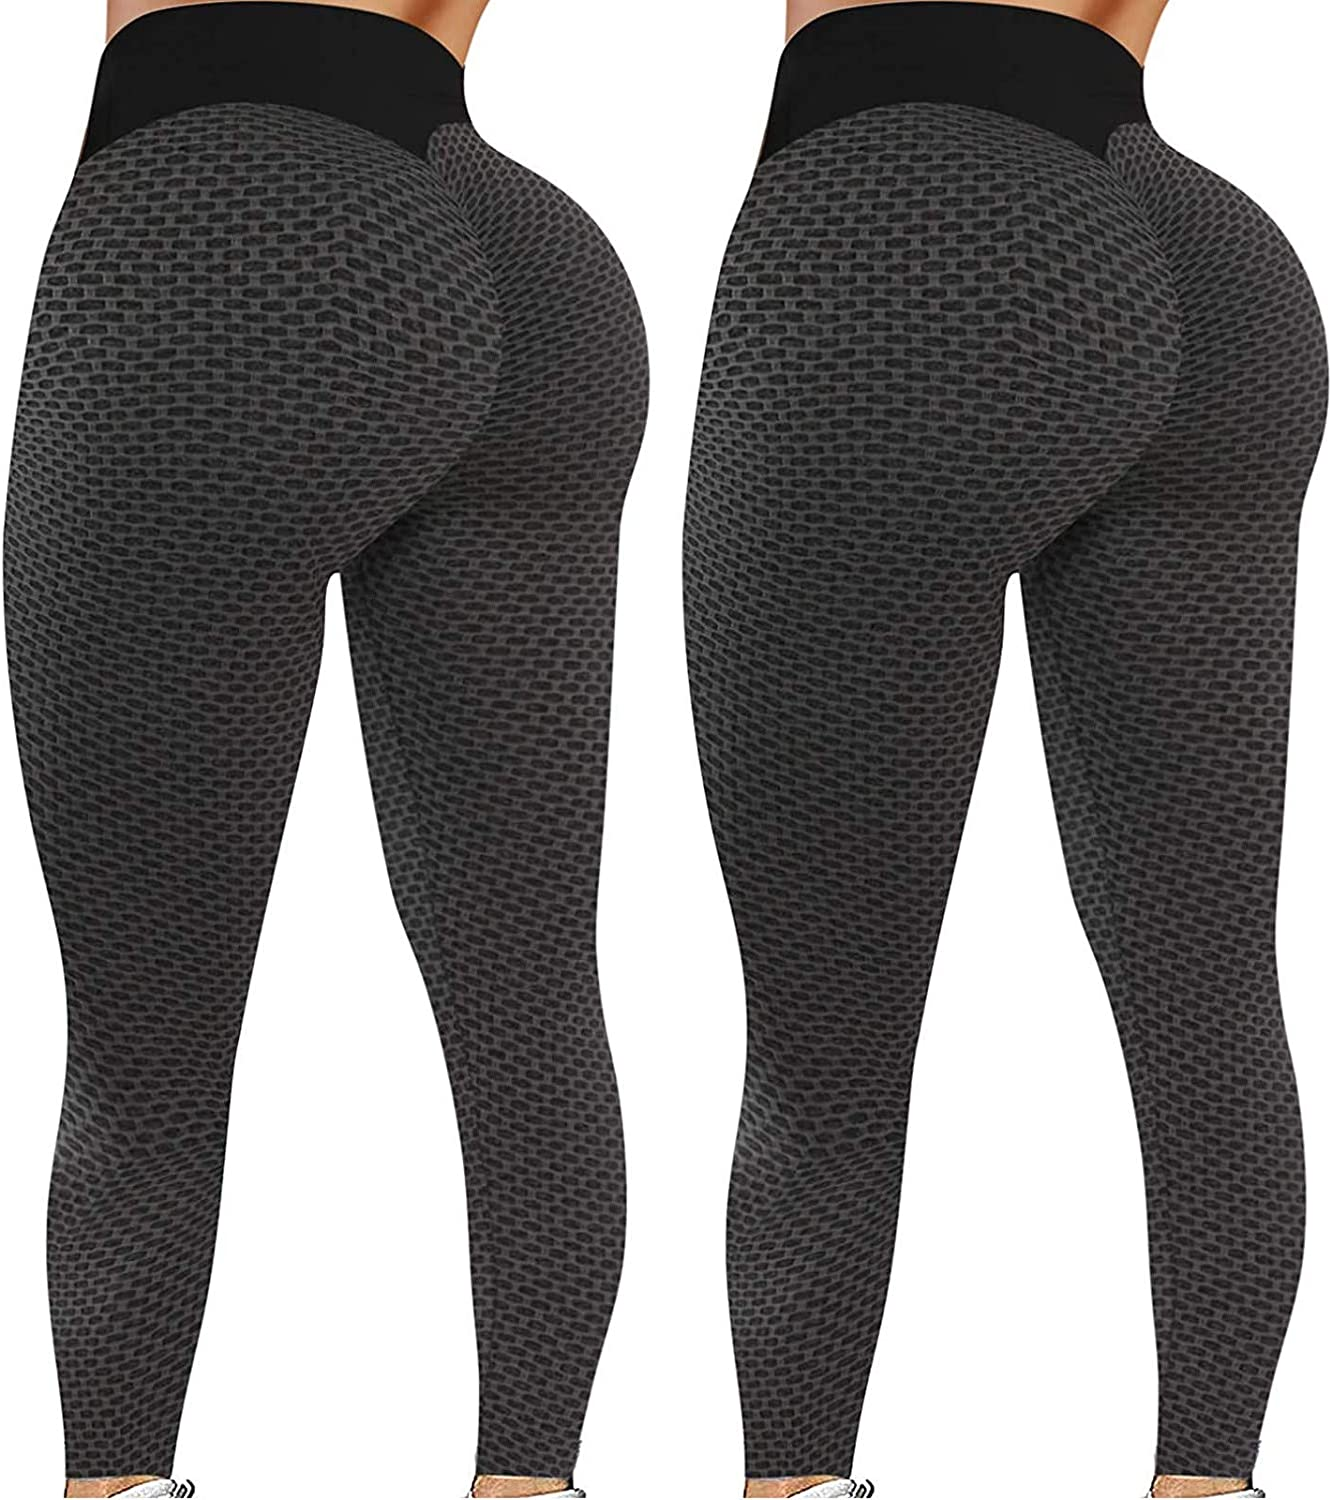 Wocachi High Waisted Leggings for Women, Butt Lifting Tummy Control Booty Womens Yoga Pants Workout Running Yoga Tights